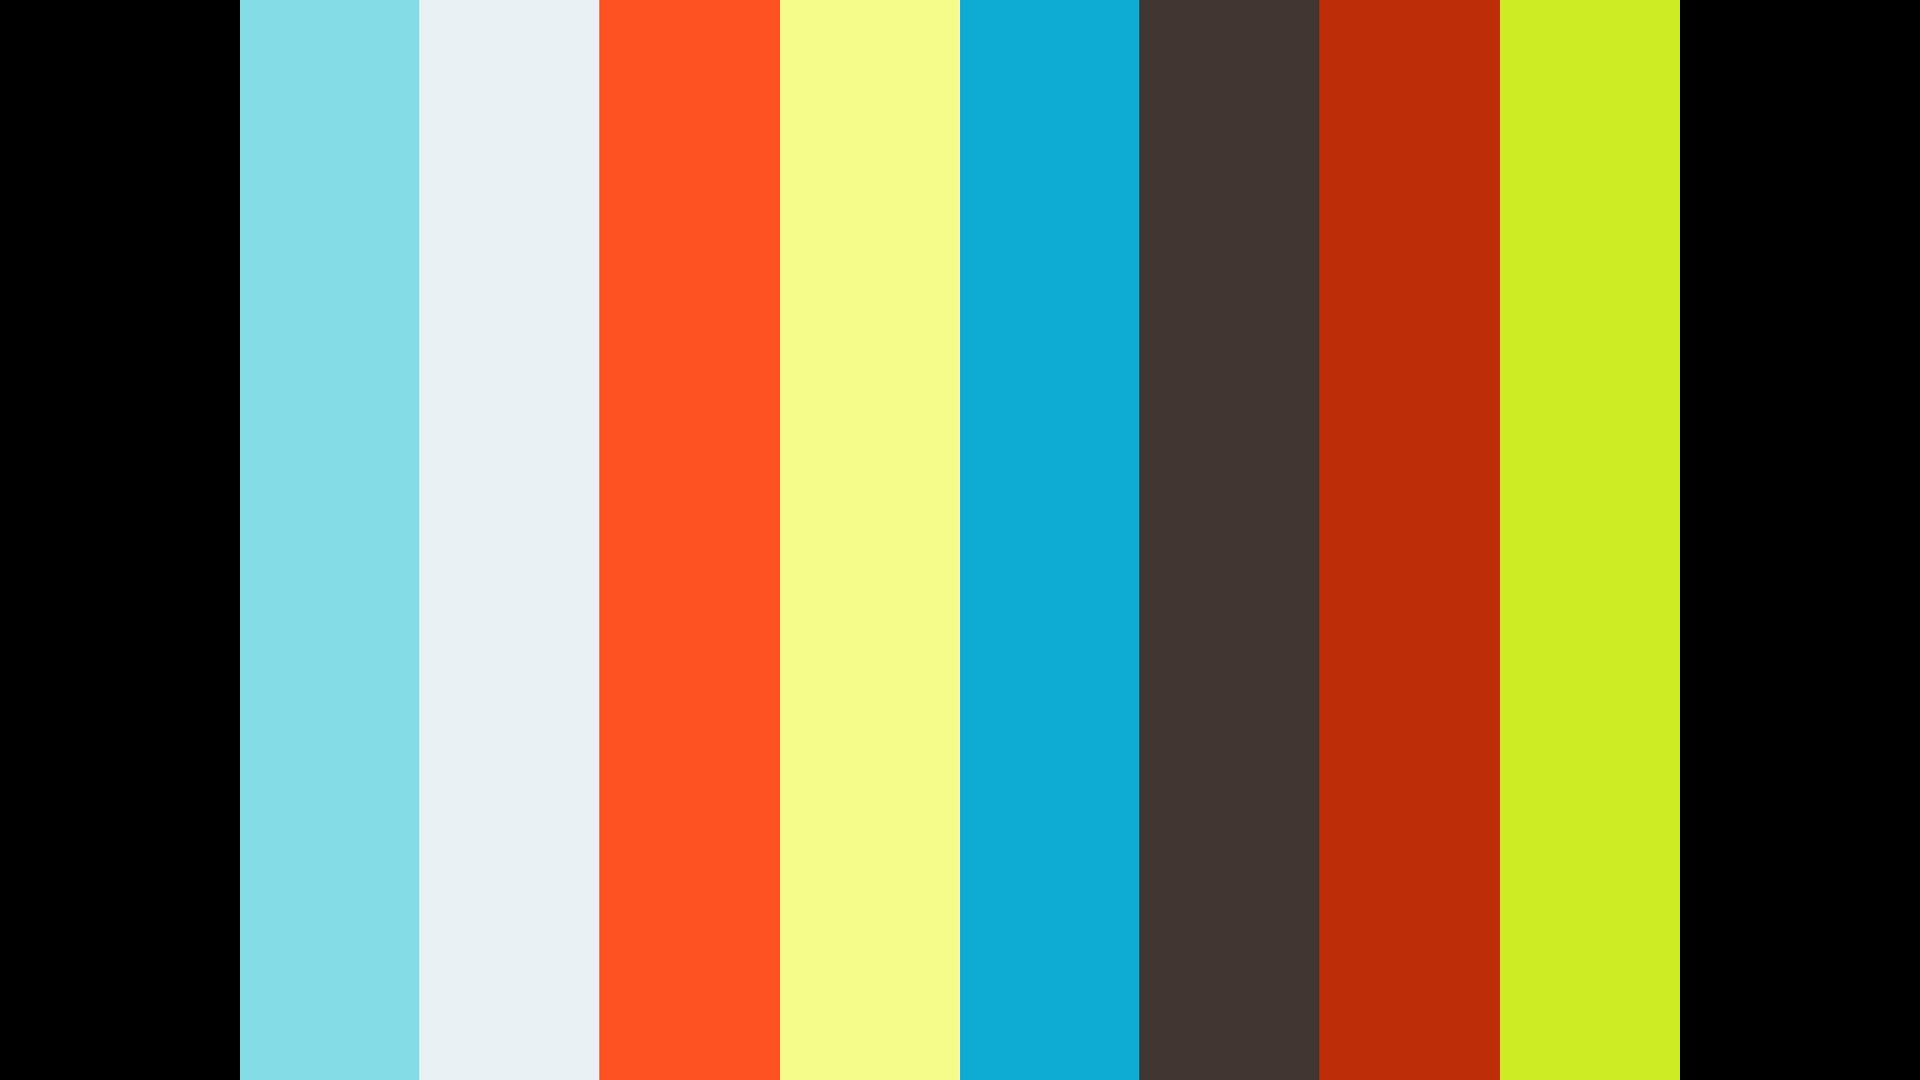 About Trinity Orthopedics